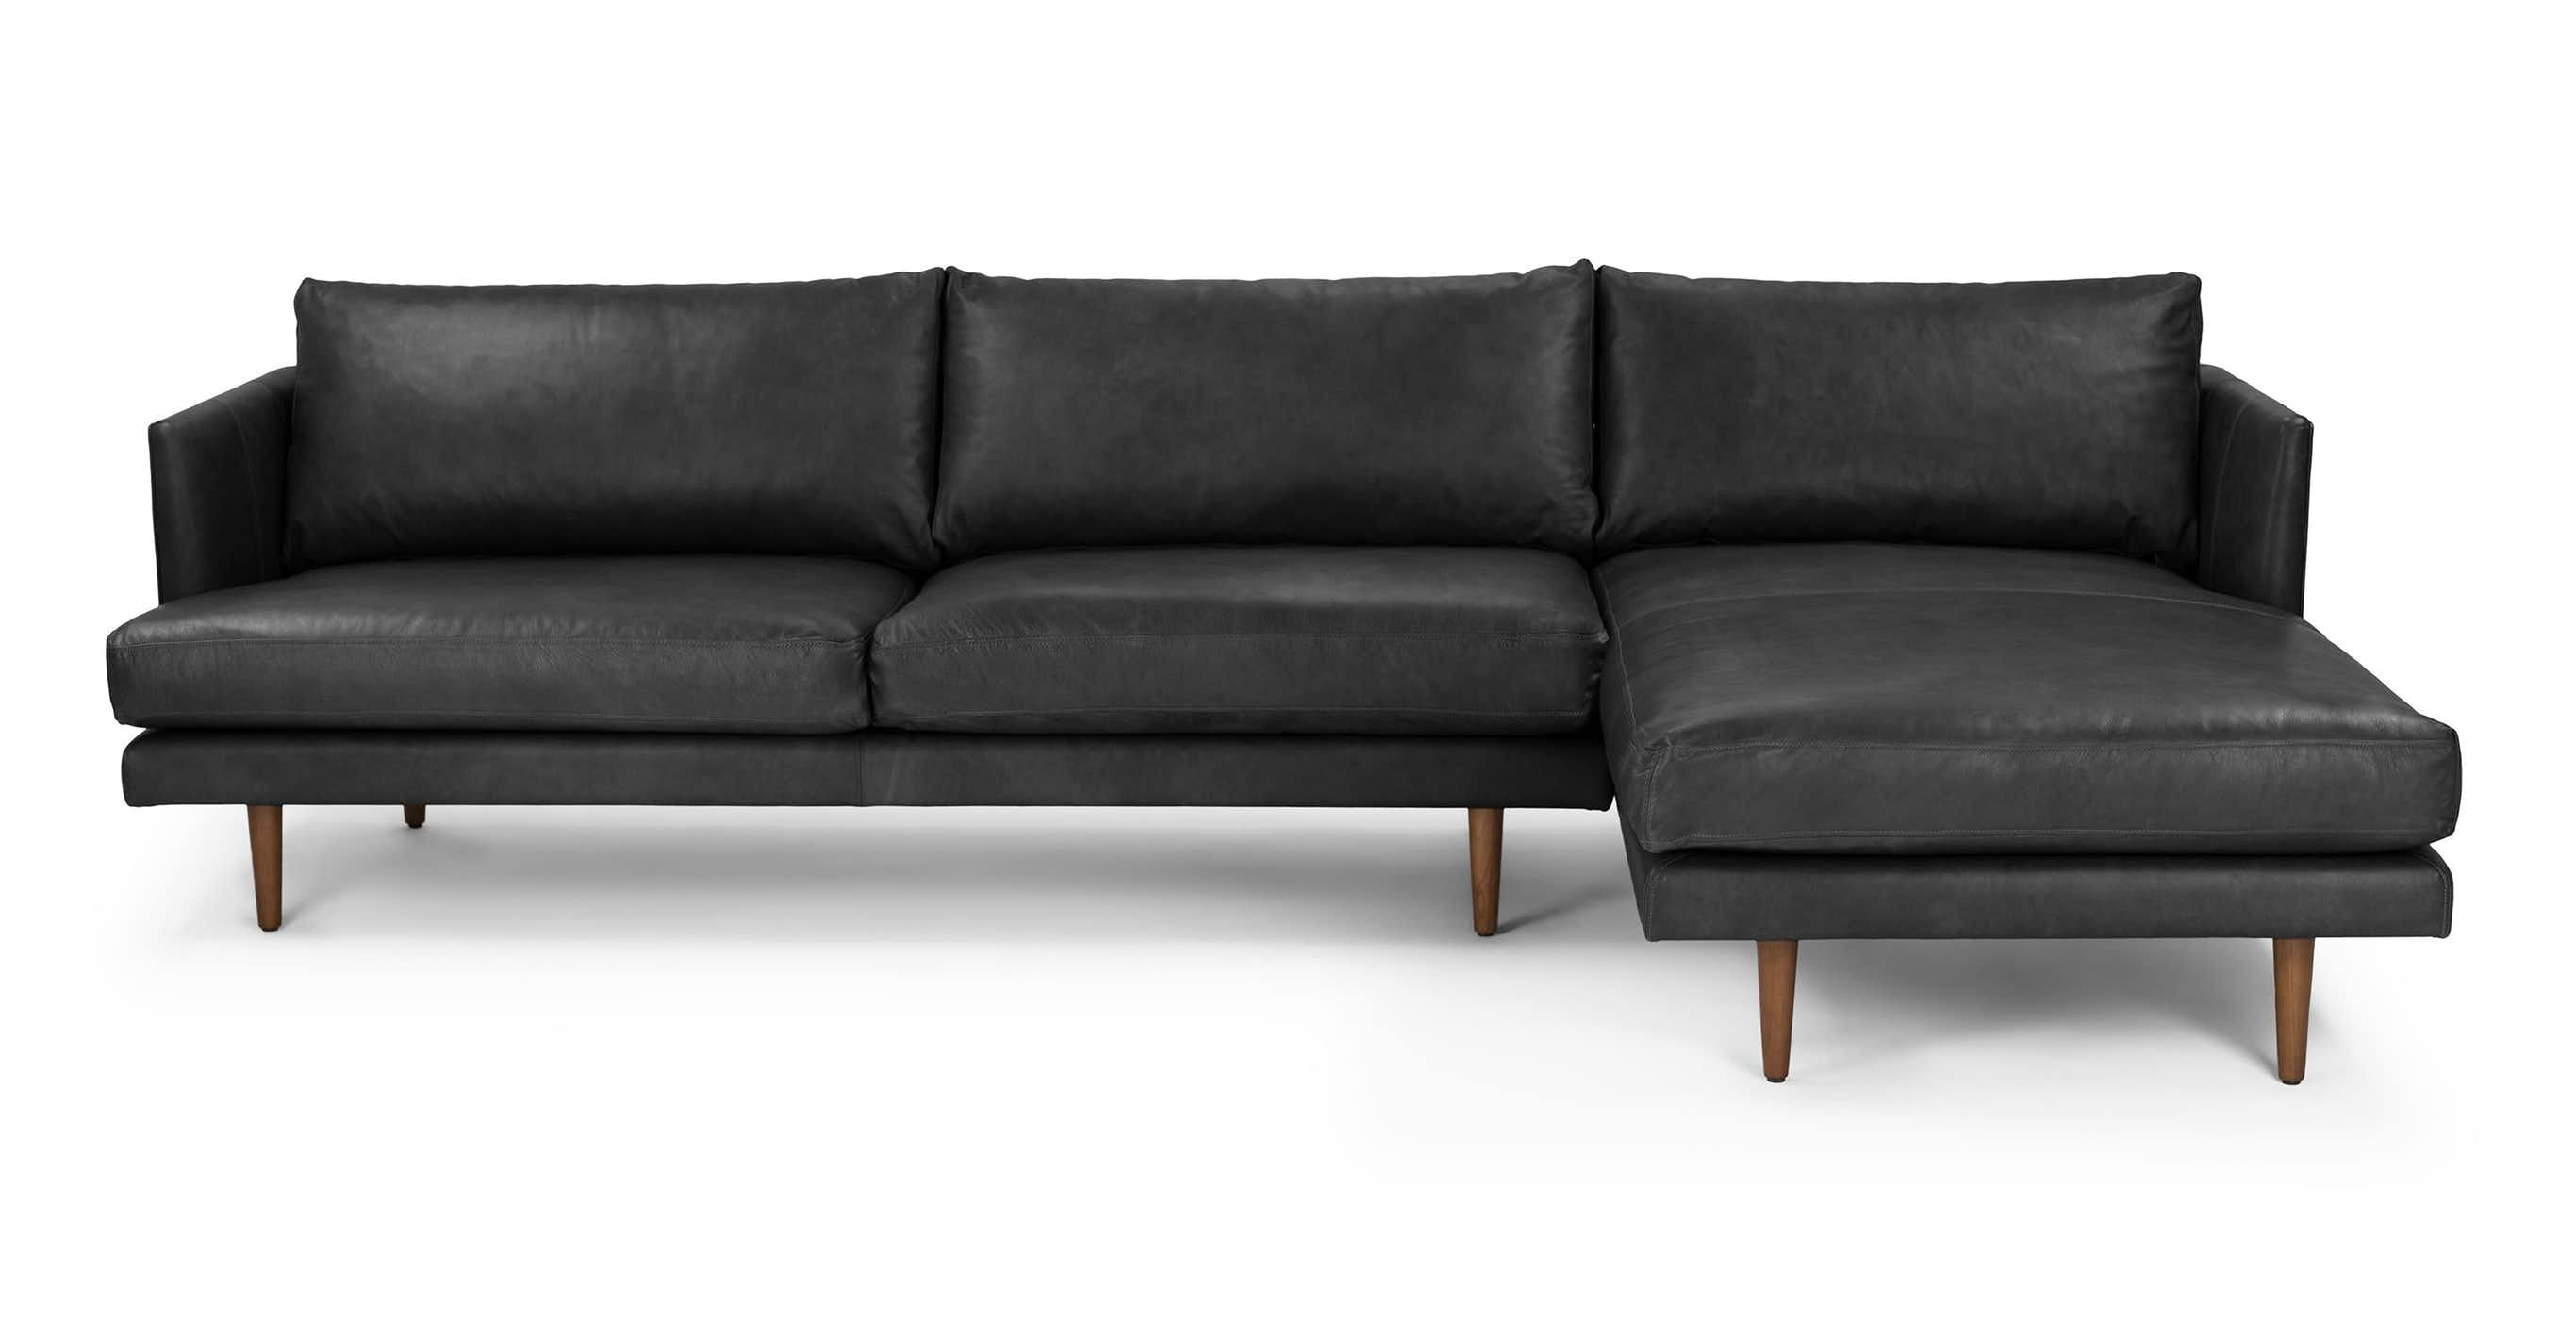 2 999 The Burrard Sectional Features Sumptuous Leather Strong